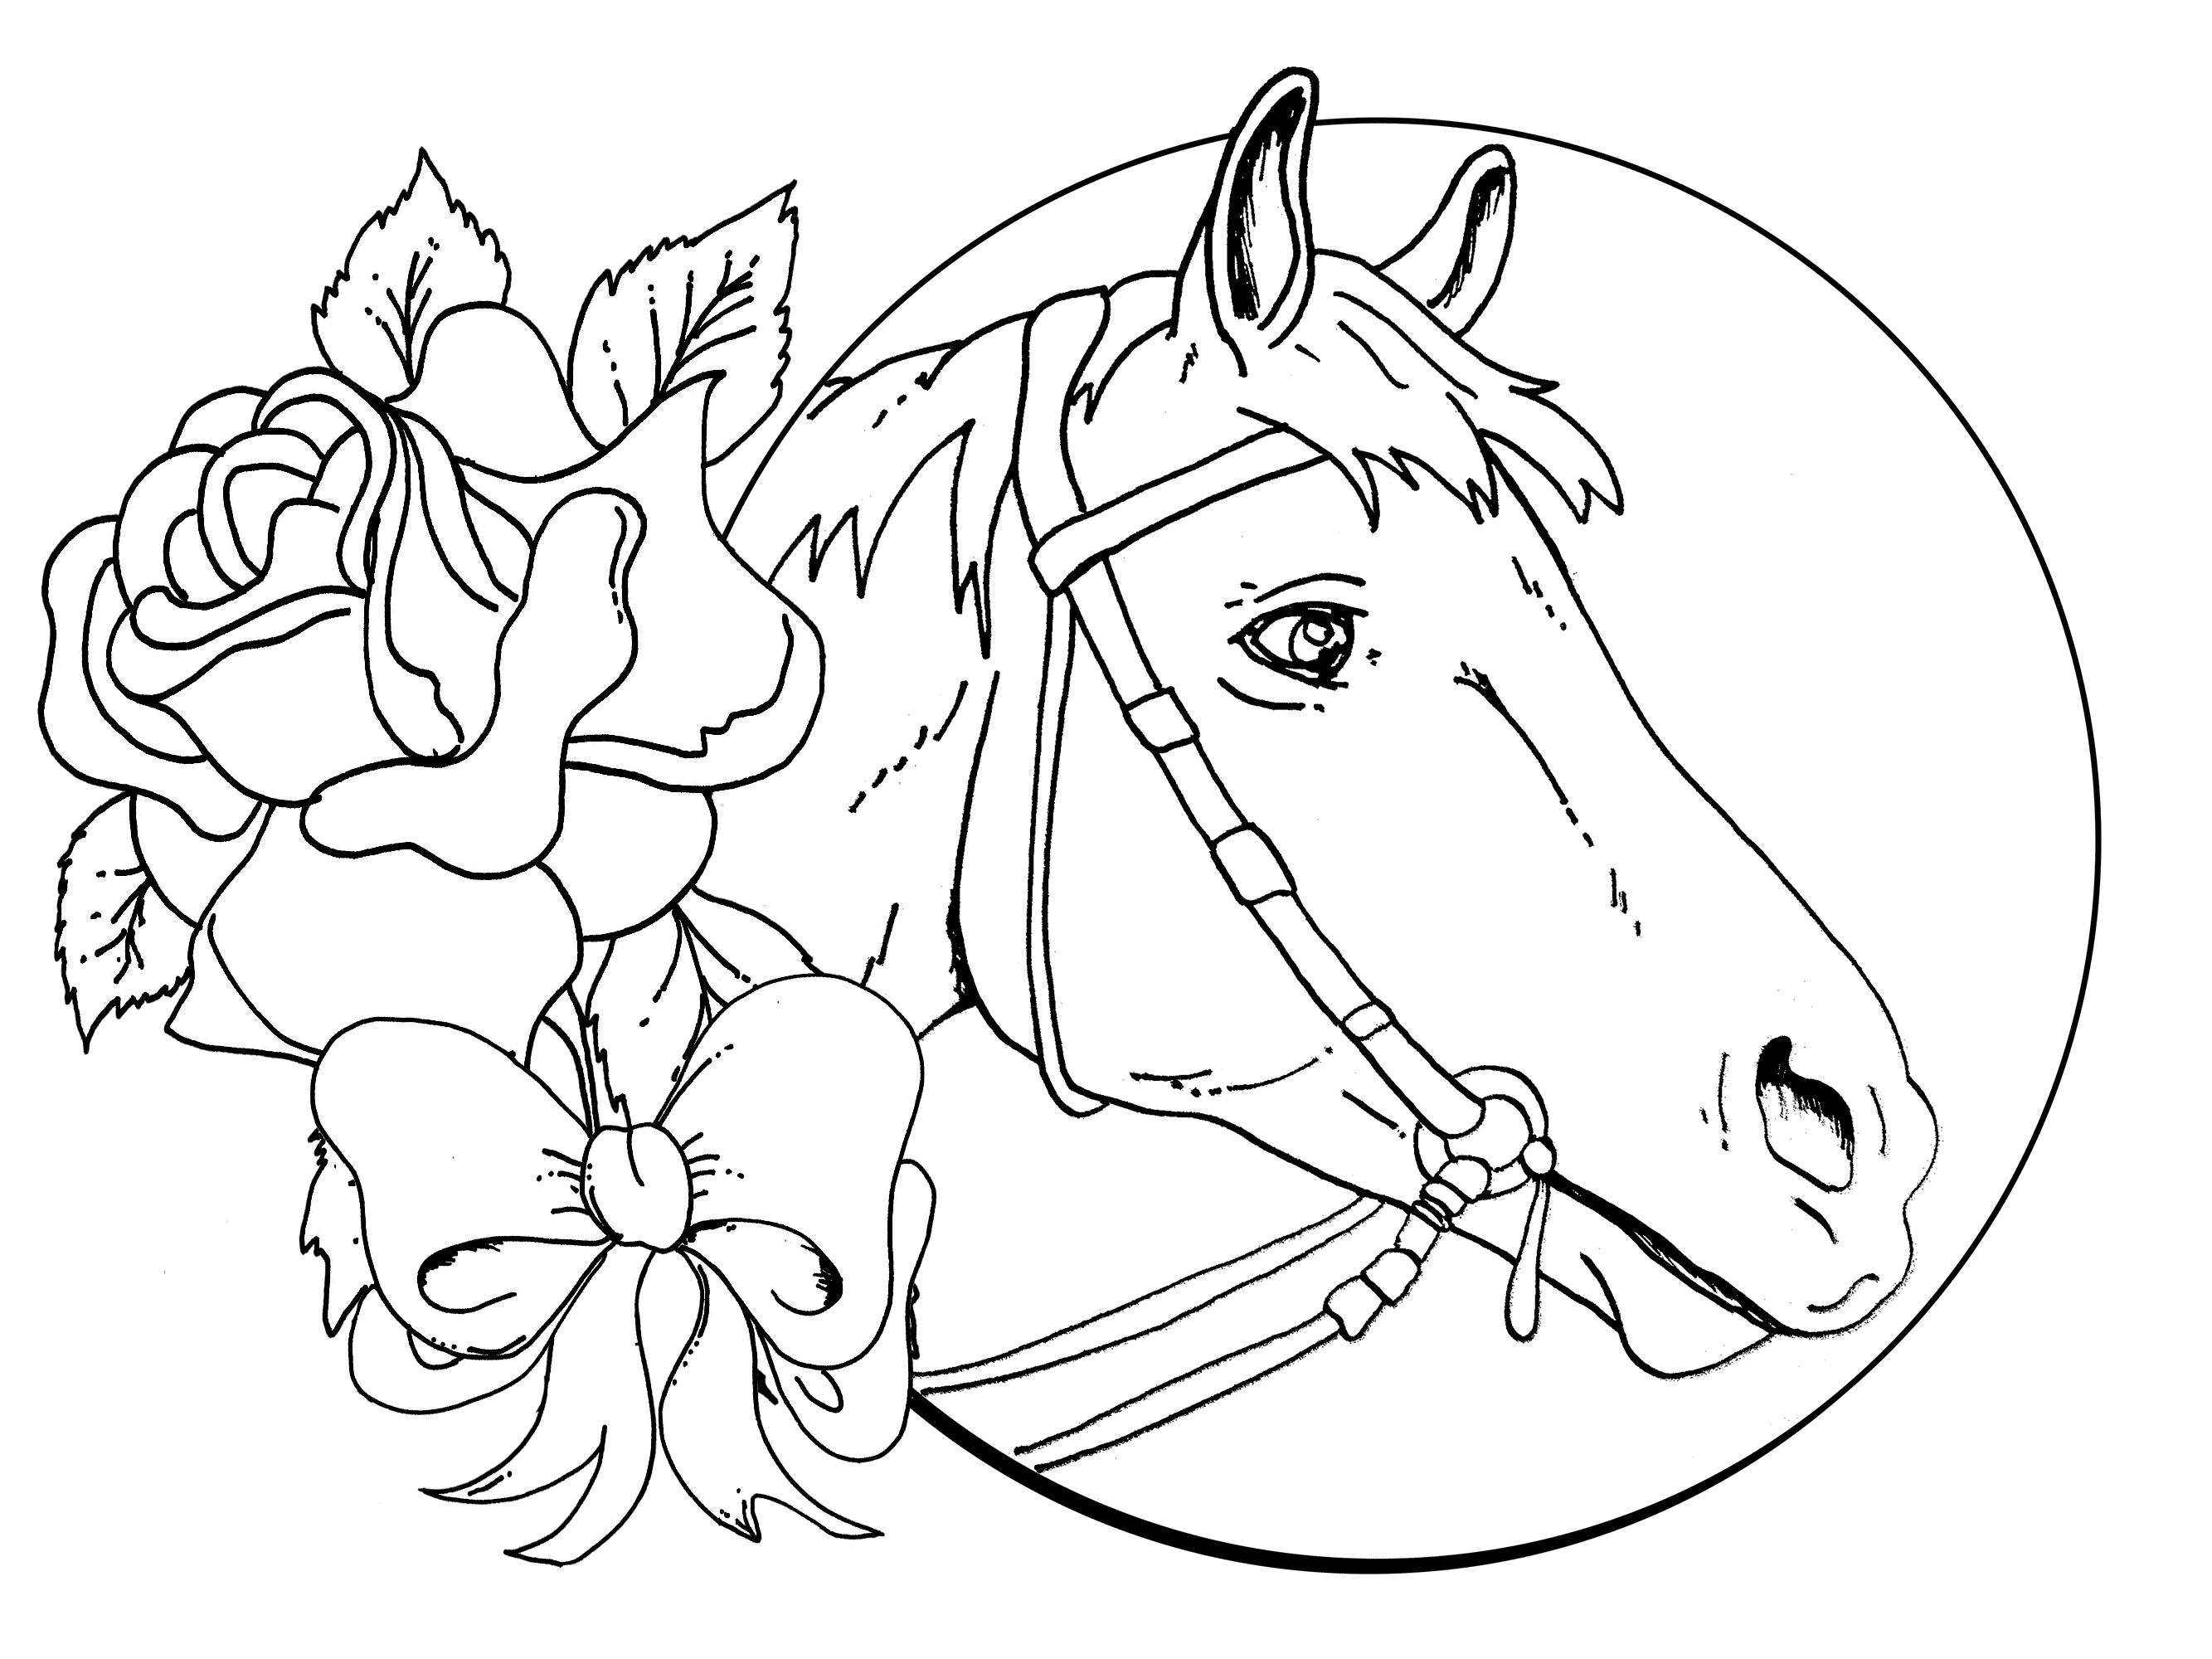 colering pages for girls coloring pages for girls dr odd girls pages for colering